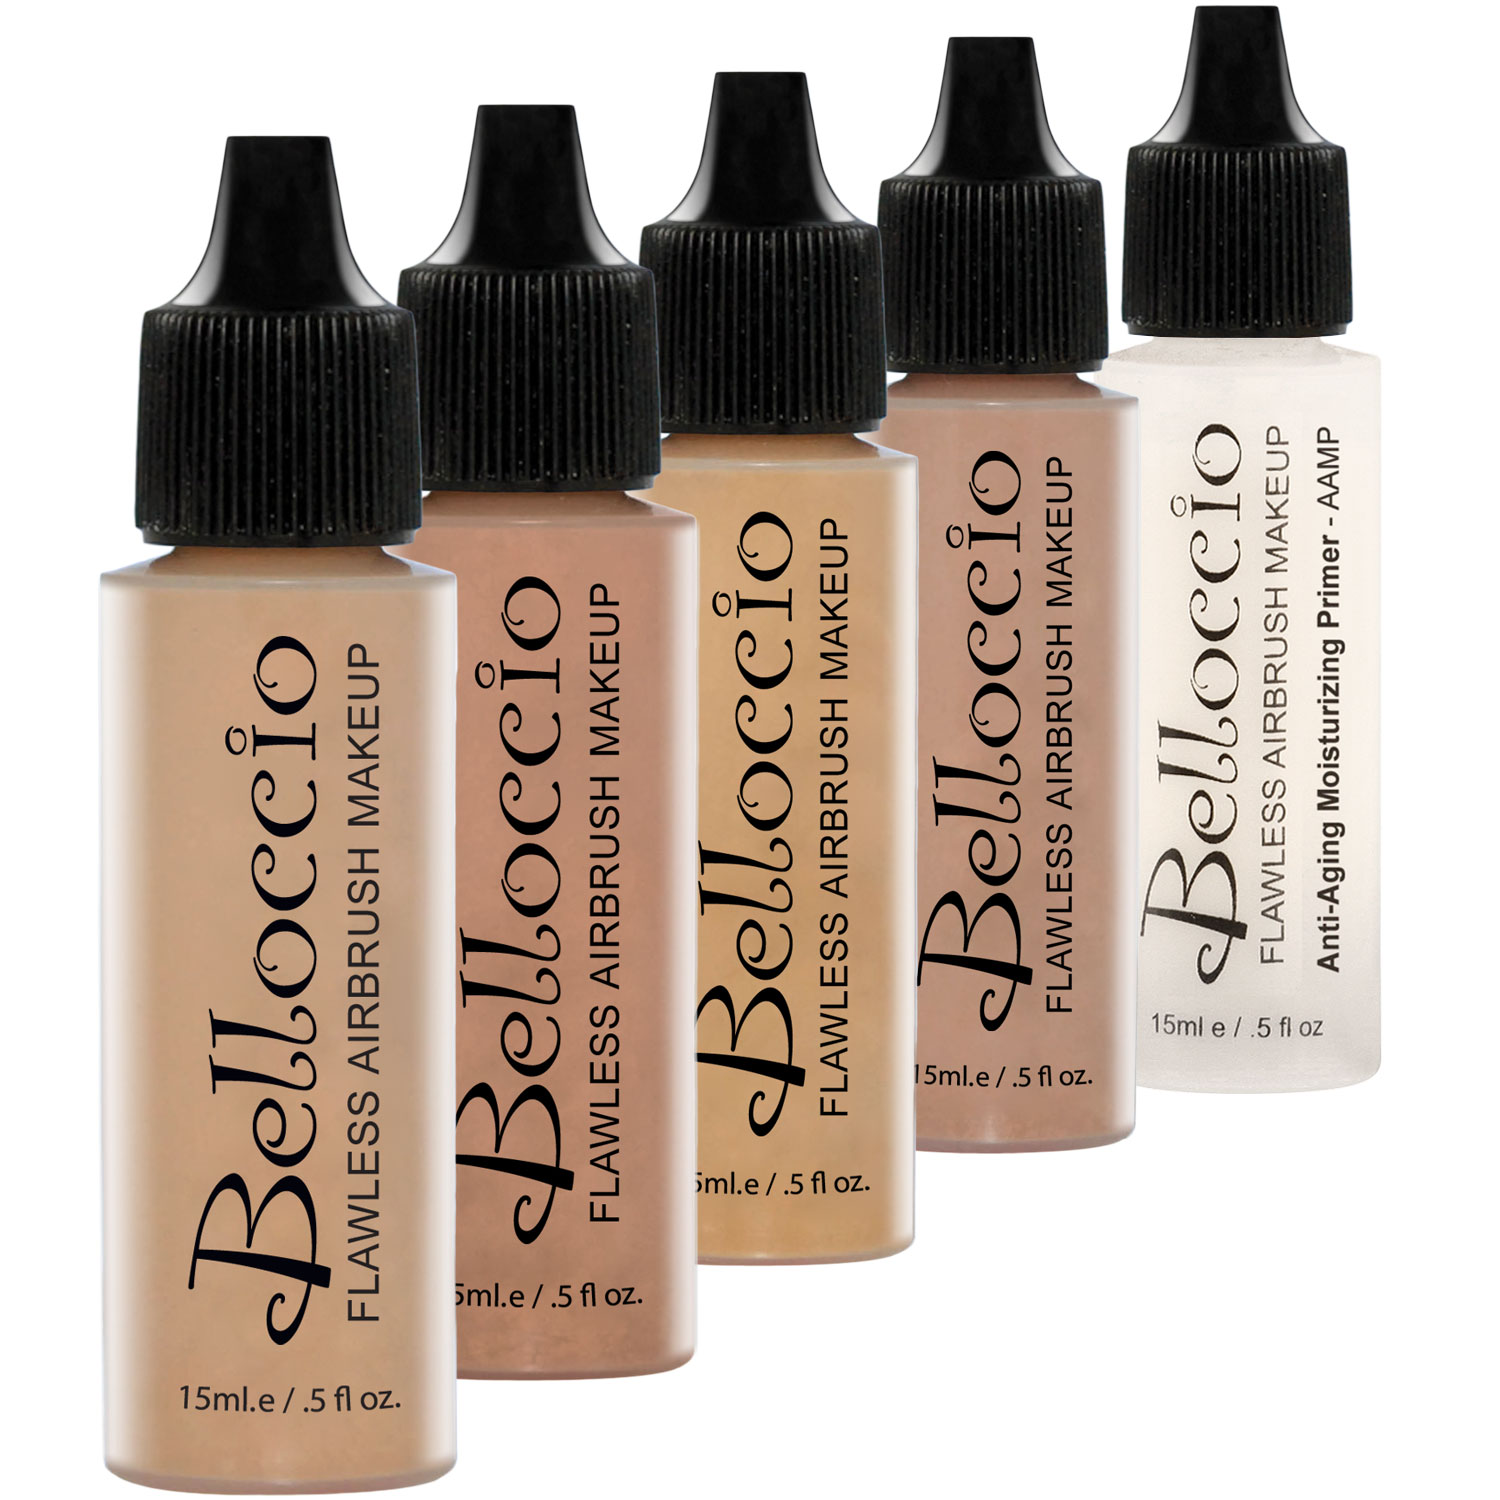 Belloccio MEDIUM Airbrush Makeup FOUNDATION SET Mid Tone Shade Face Cosmetic Kit